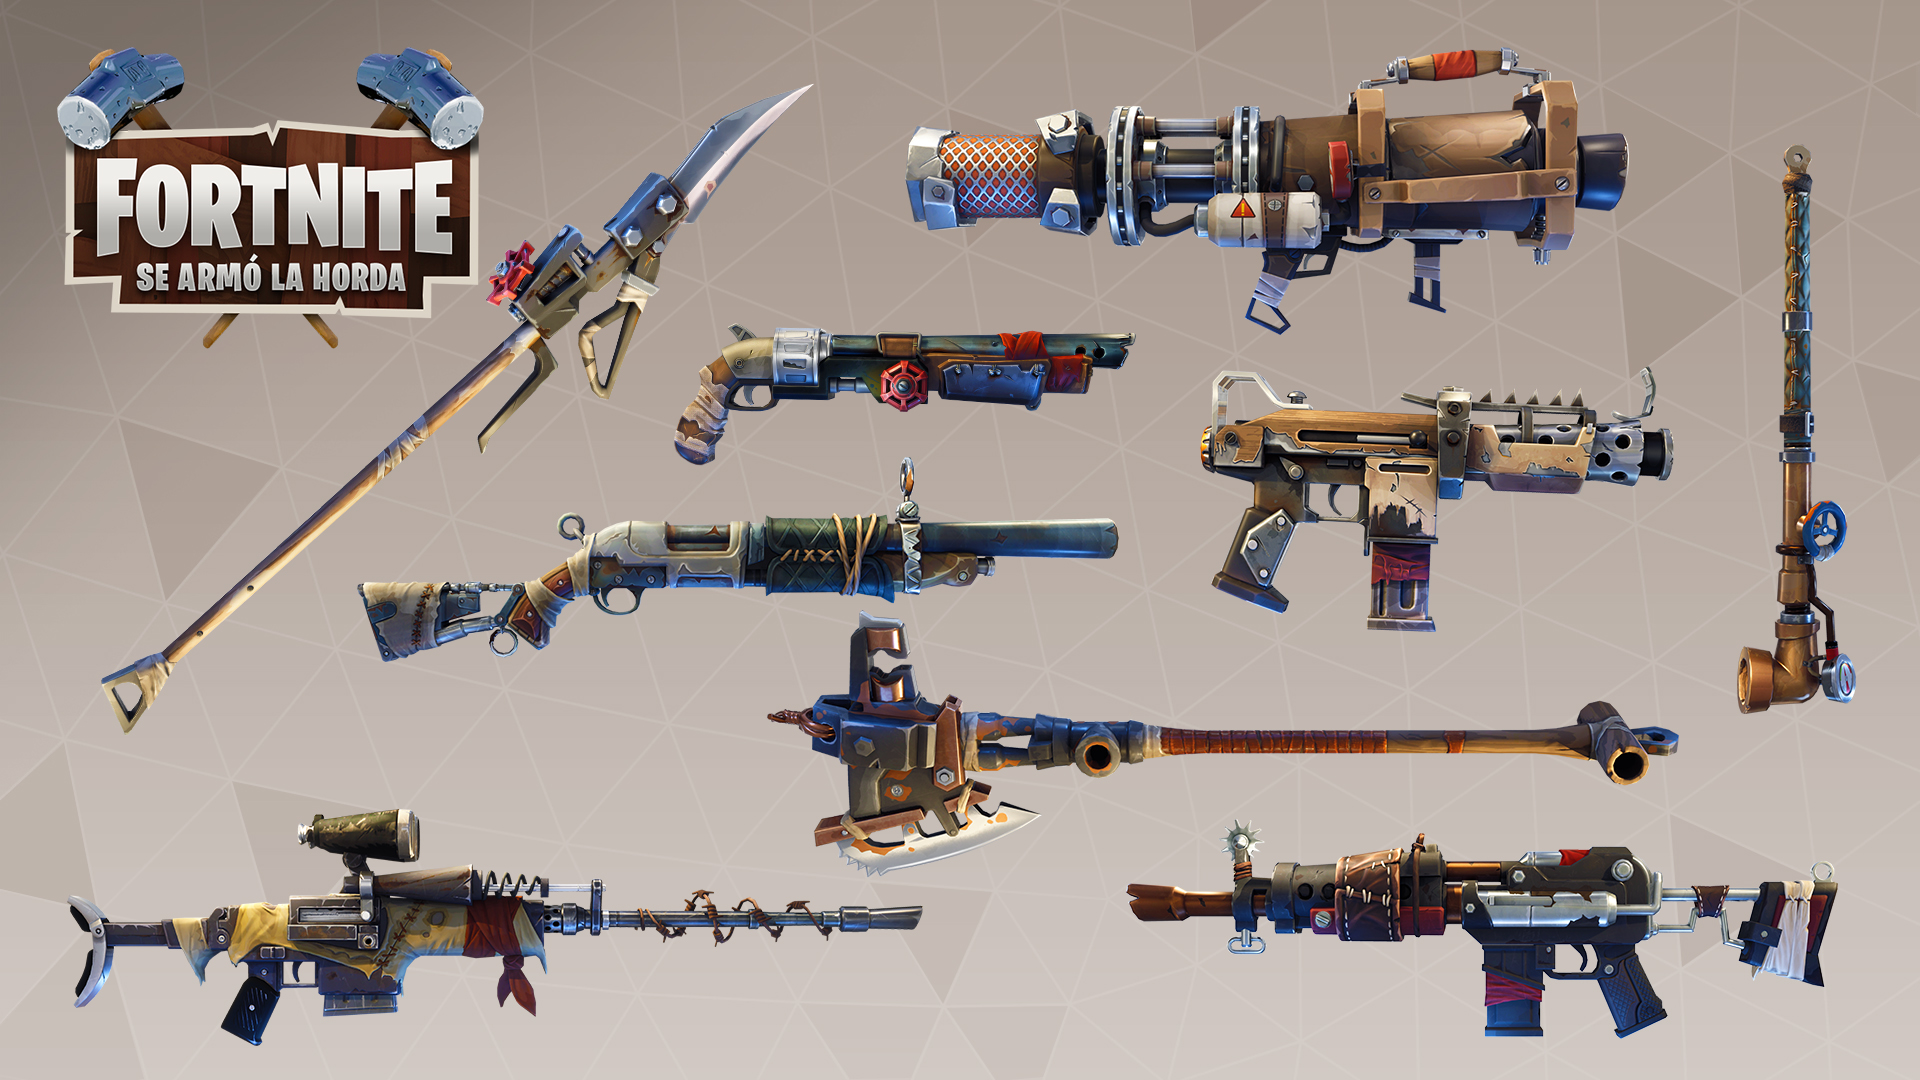 Fortnite%2Fblog%2Fea-1-7-patch-notes%2FES-ES-HB-Weapons-1920x1080-0c2443189e7c702059c624ea402ac82fc83d27a6